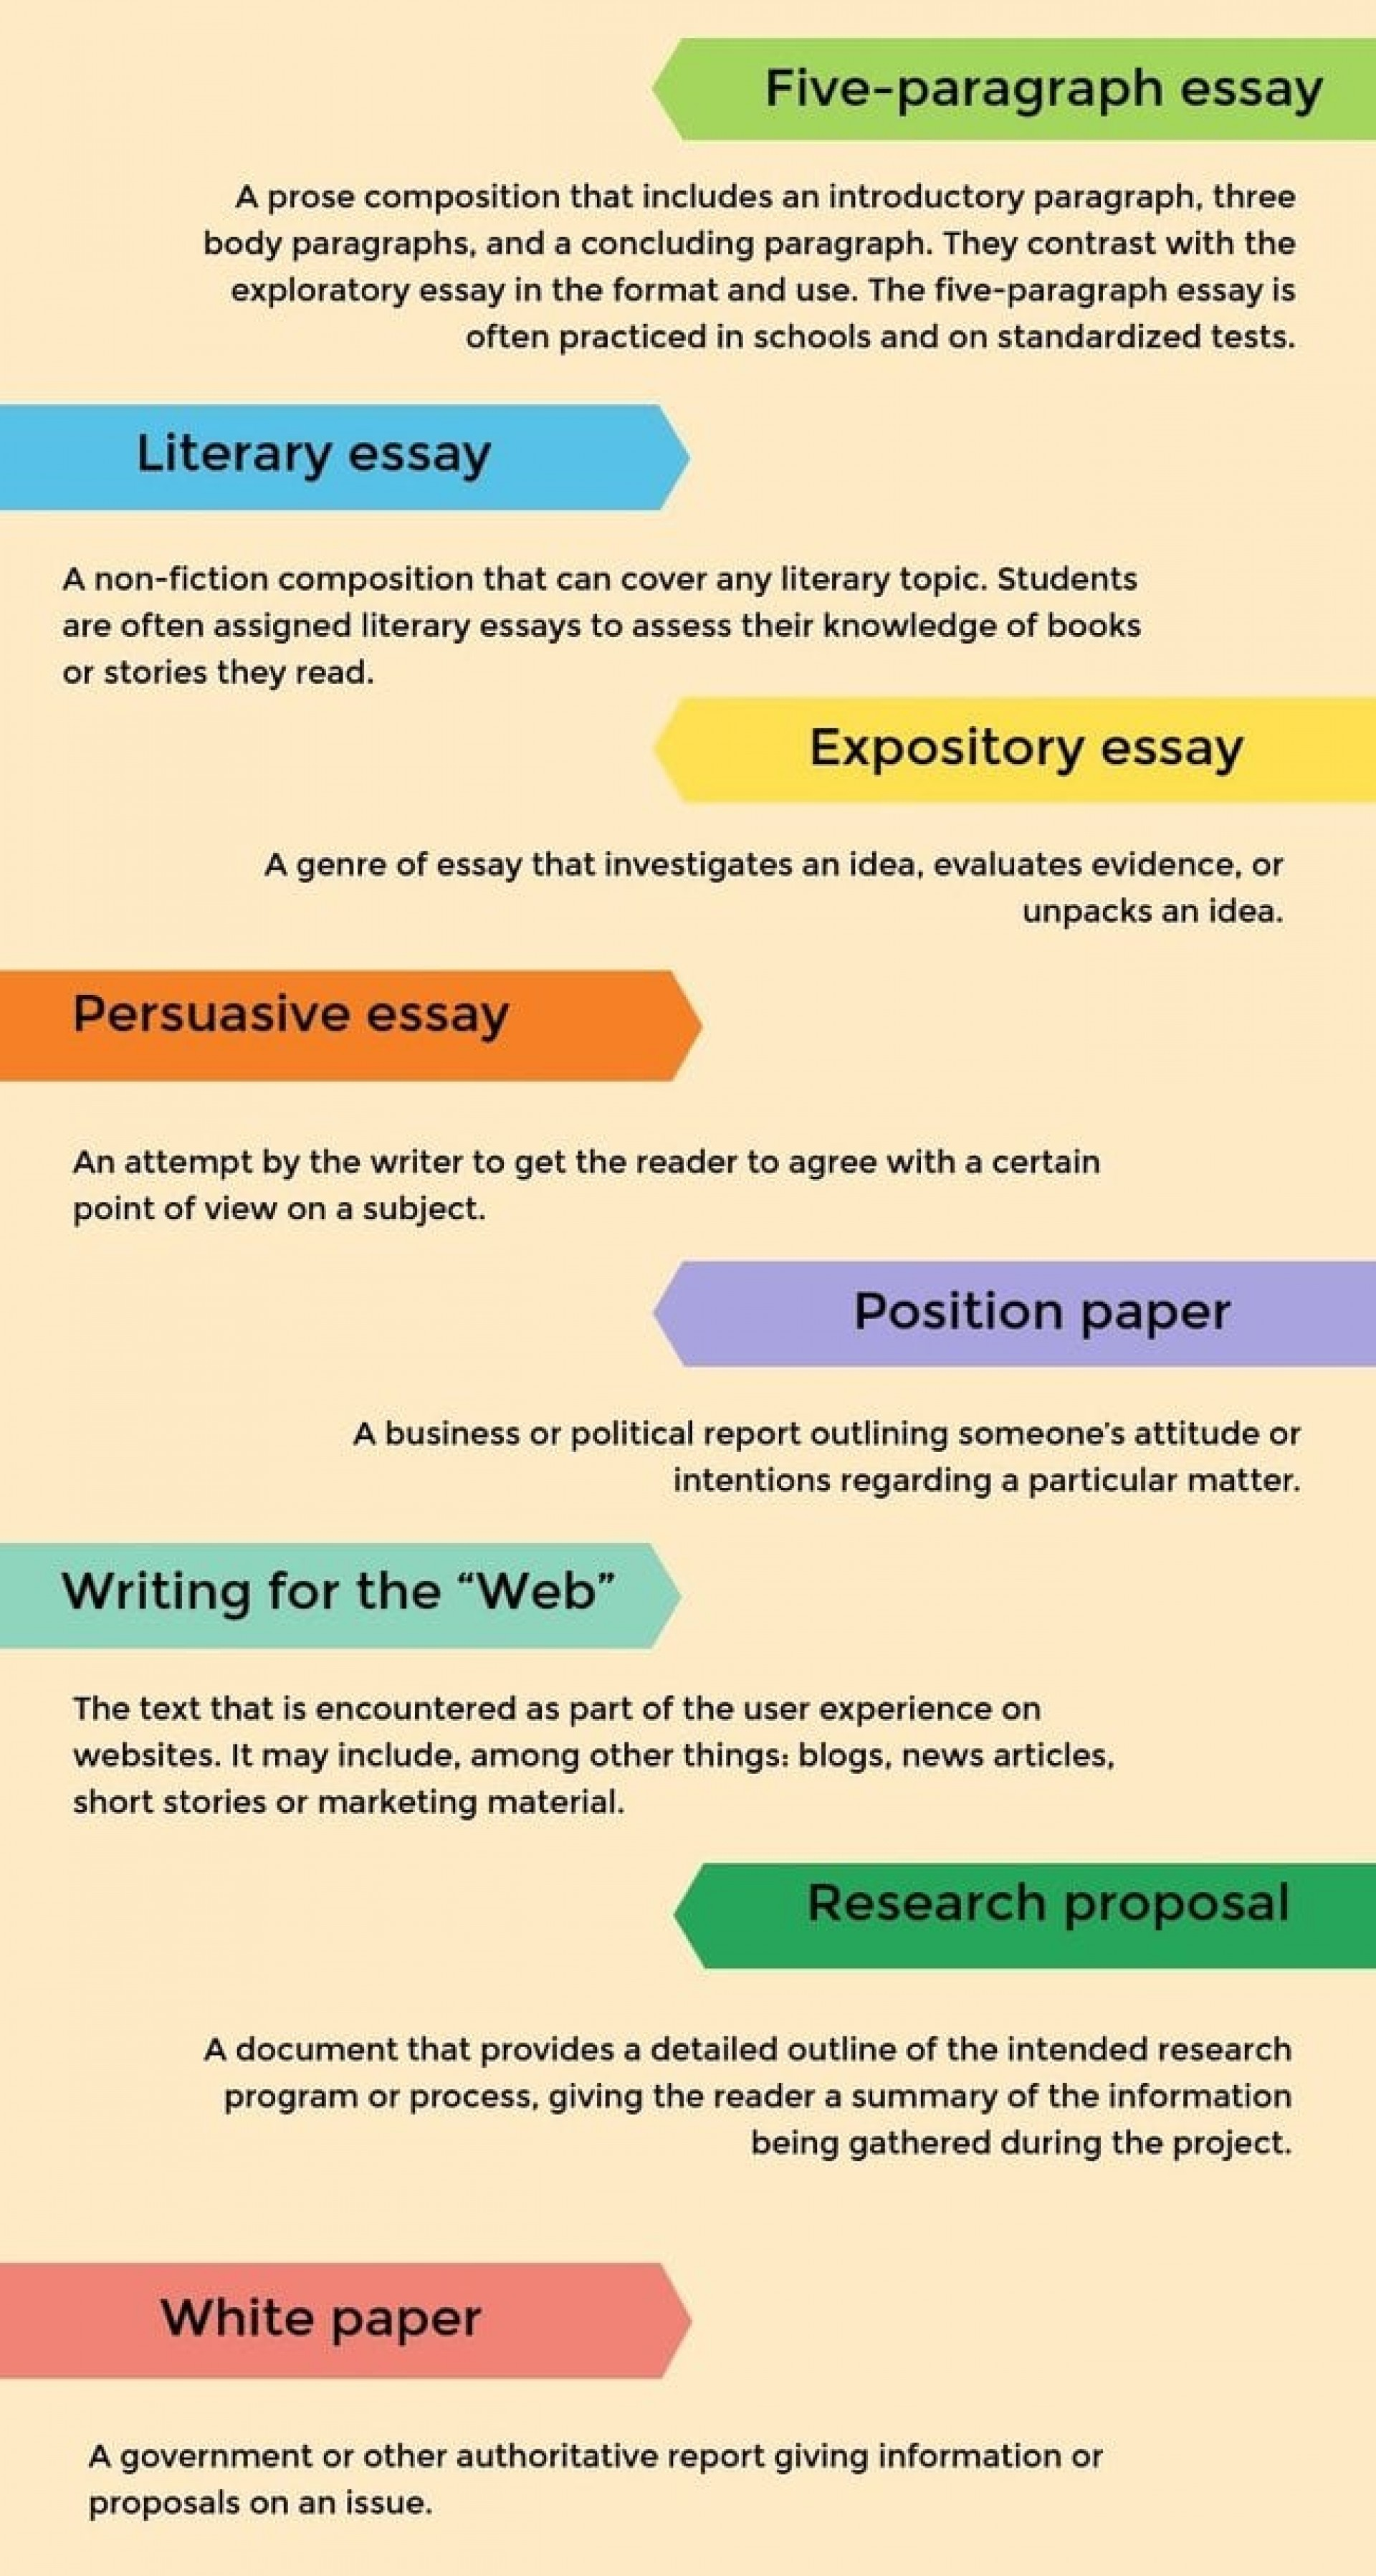 011 Oz Types Of Essays Essay Example Paragraph Best 5 Topics For High School Middle 1920